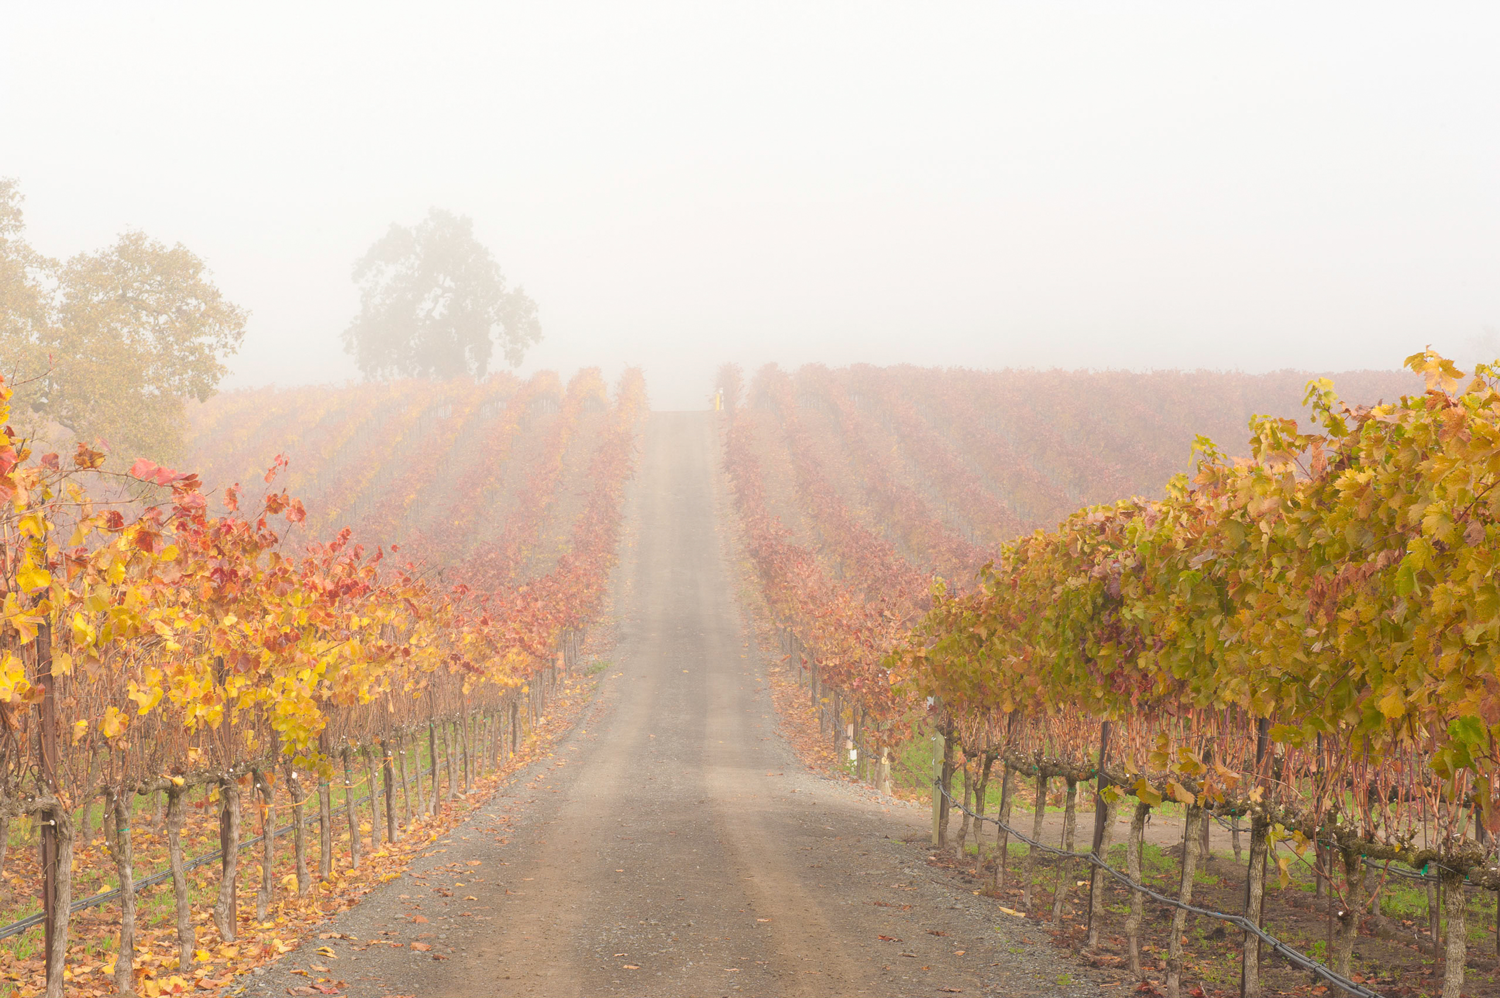 Road_to_nowhere_through_the_BCD_vineyards.png